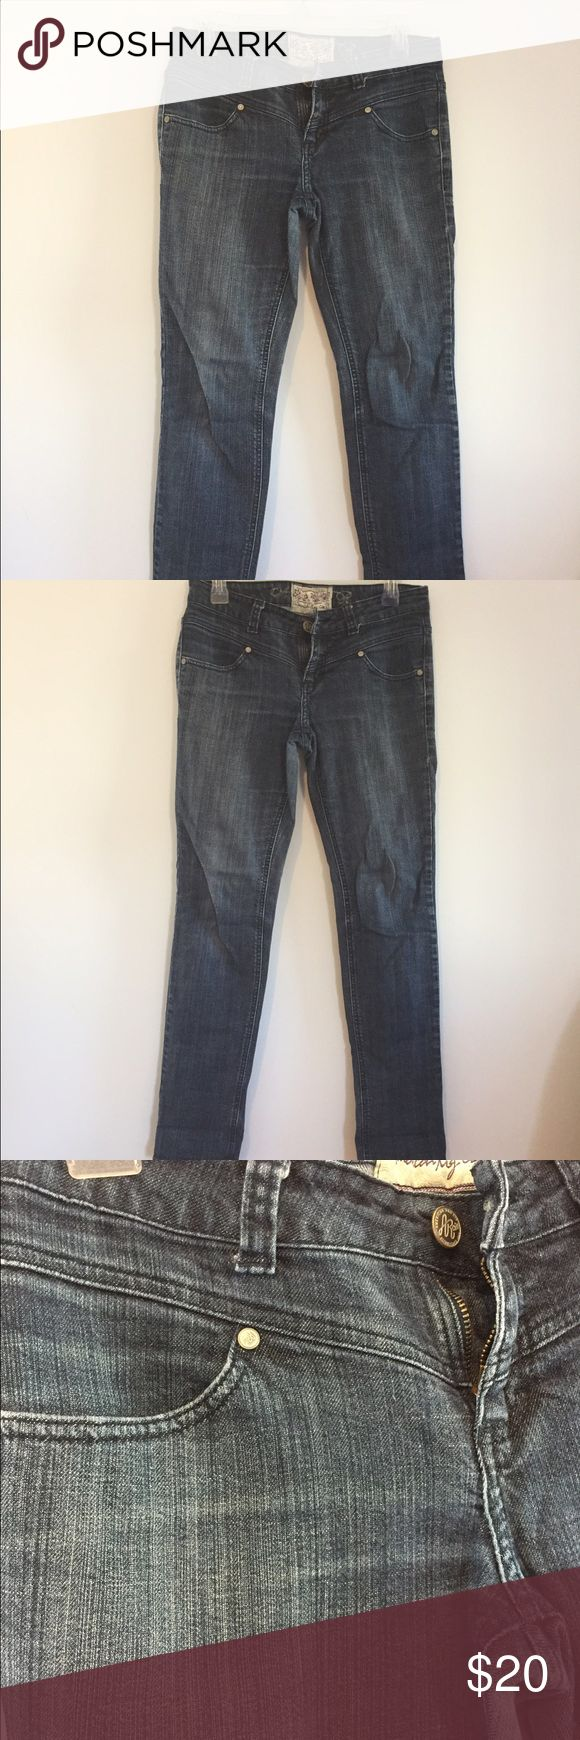 American Rag Skinny Jeans Low-rise skinny jeans by American Rag. Worn for years but they're too big for me now; denim is still in great shape and I'd love to find them a new home! American Rag Jeans Skinny